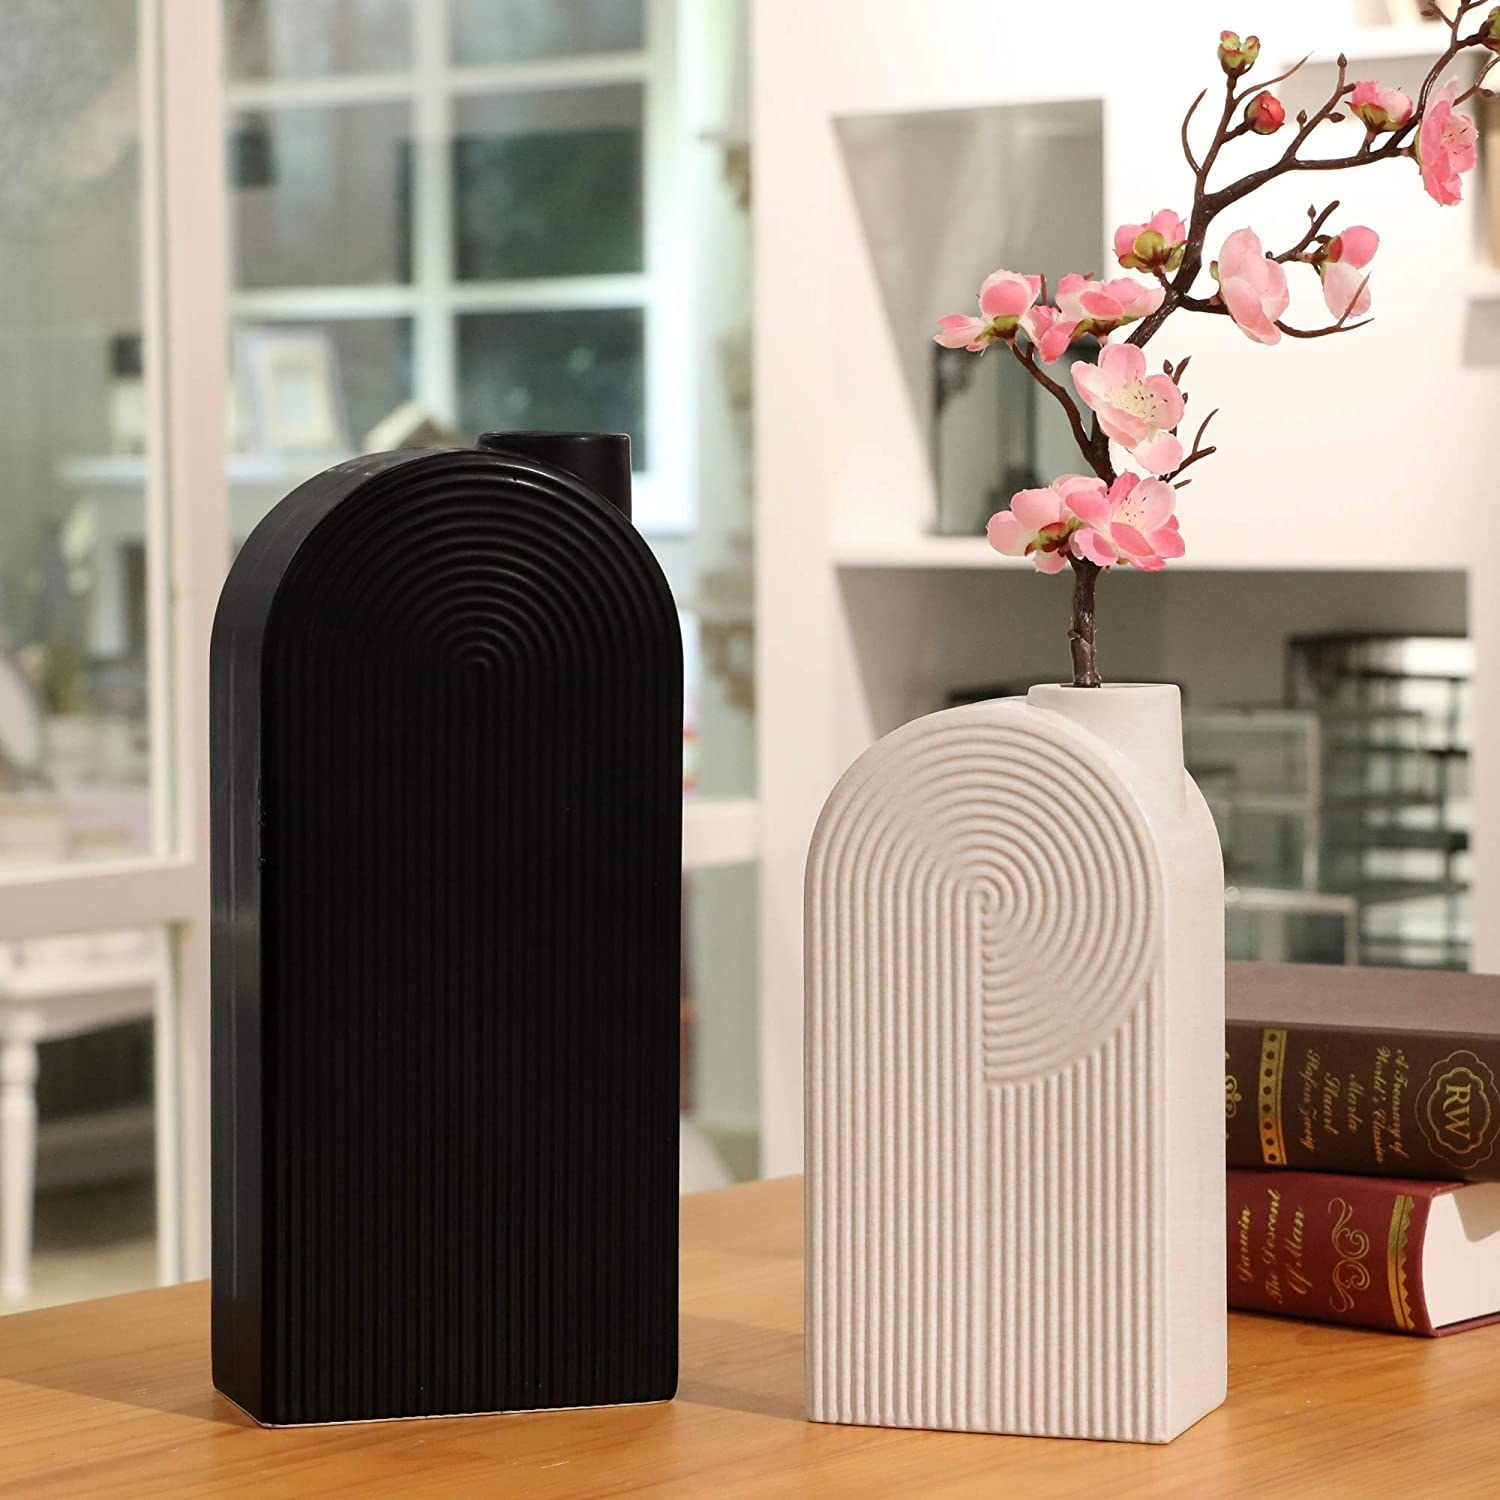 Two vases — one taller black with semi-circular and straight stripes in black and a smaller one with the same design in white